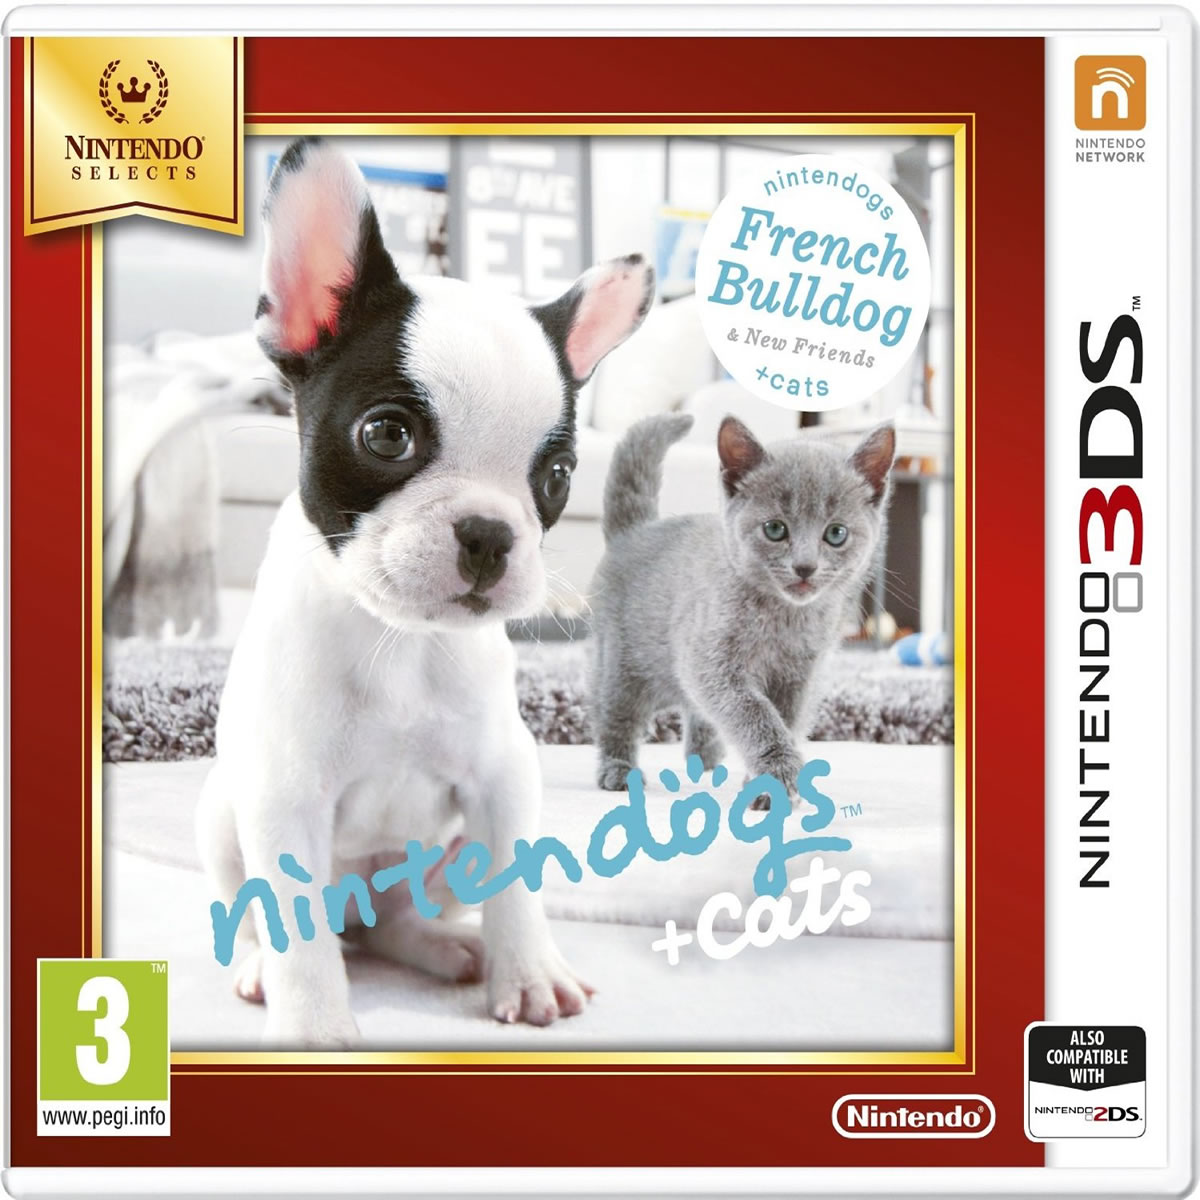 NINTENDOGS :BULLDOG & FRIENDS - SELECTS (3DS, 2DS)